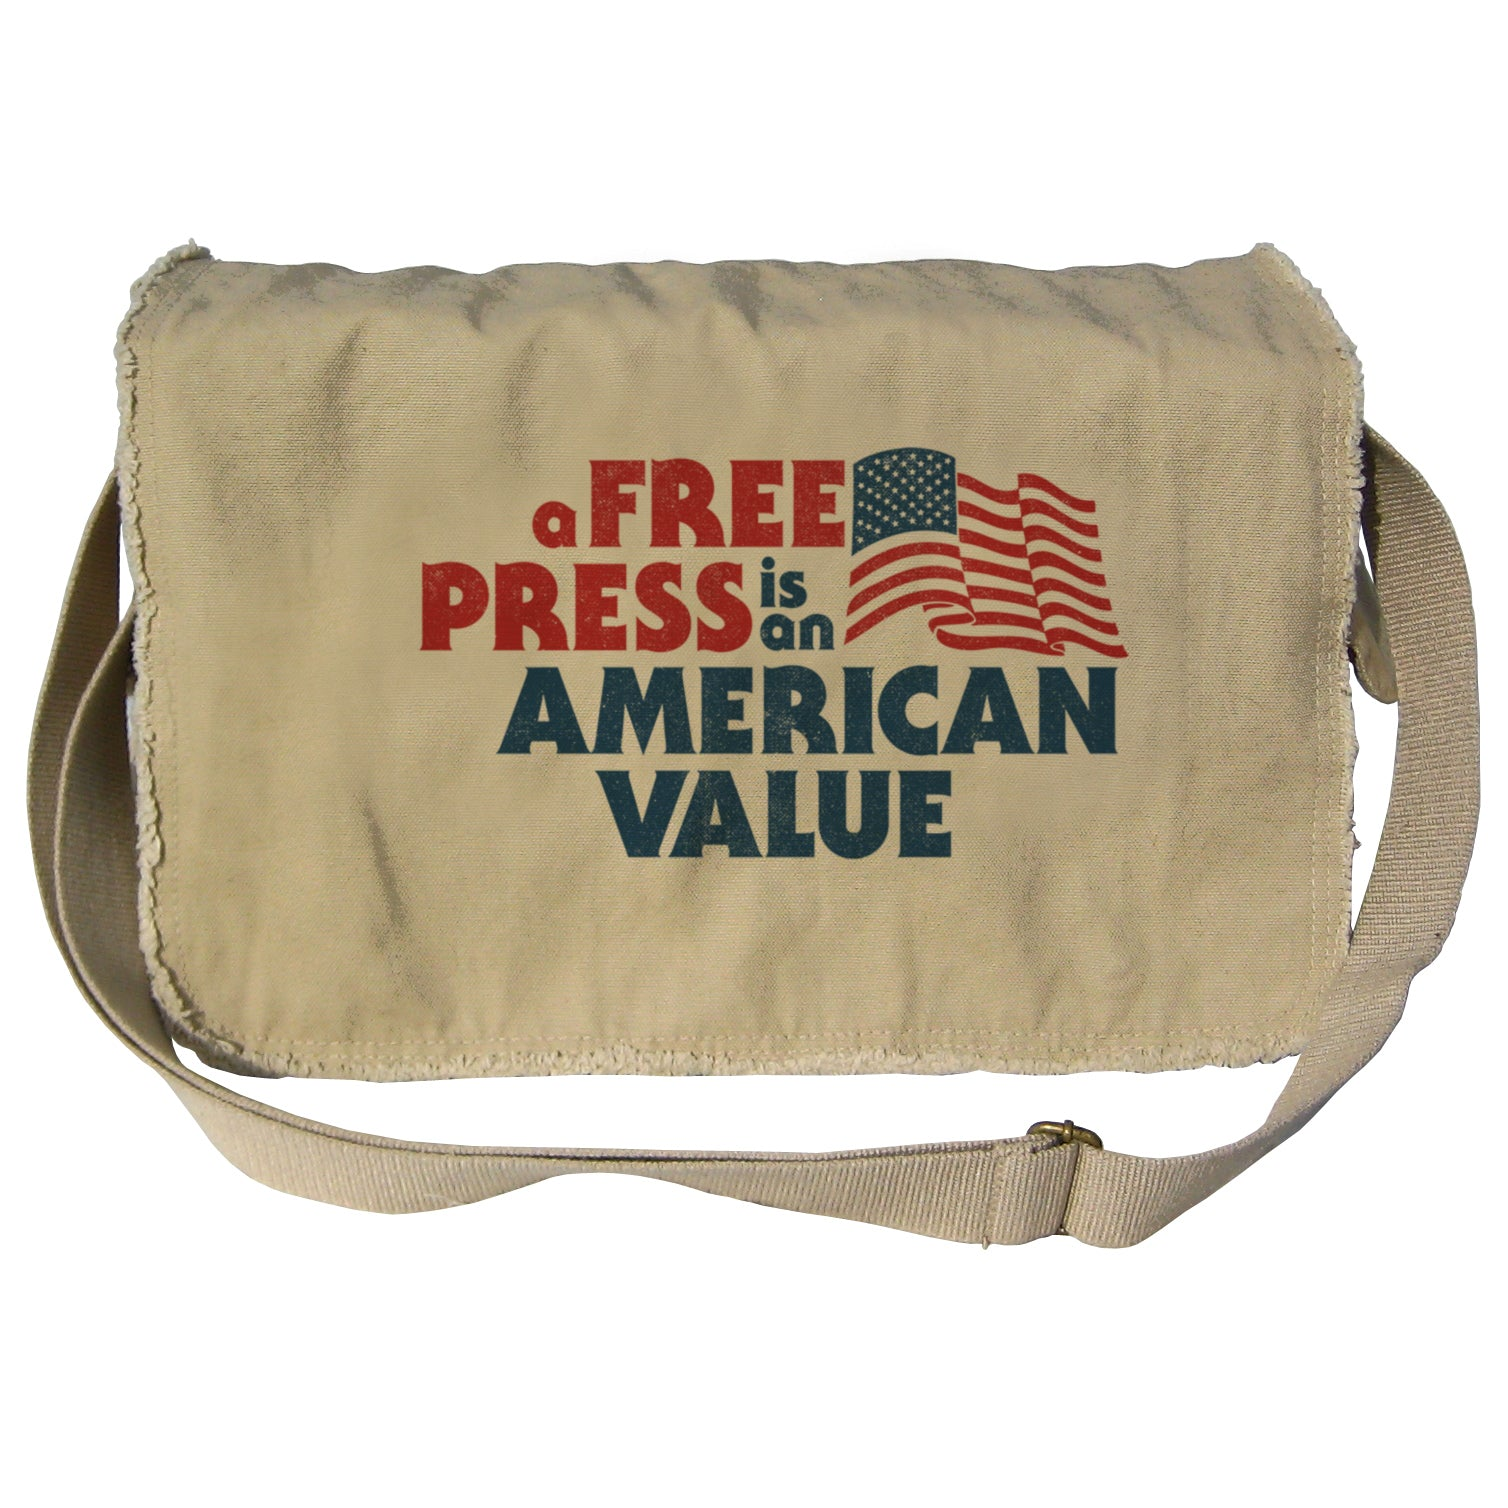 A Free Press is an American Value Messenger Bag